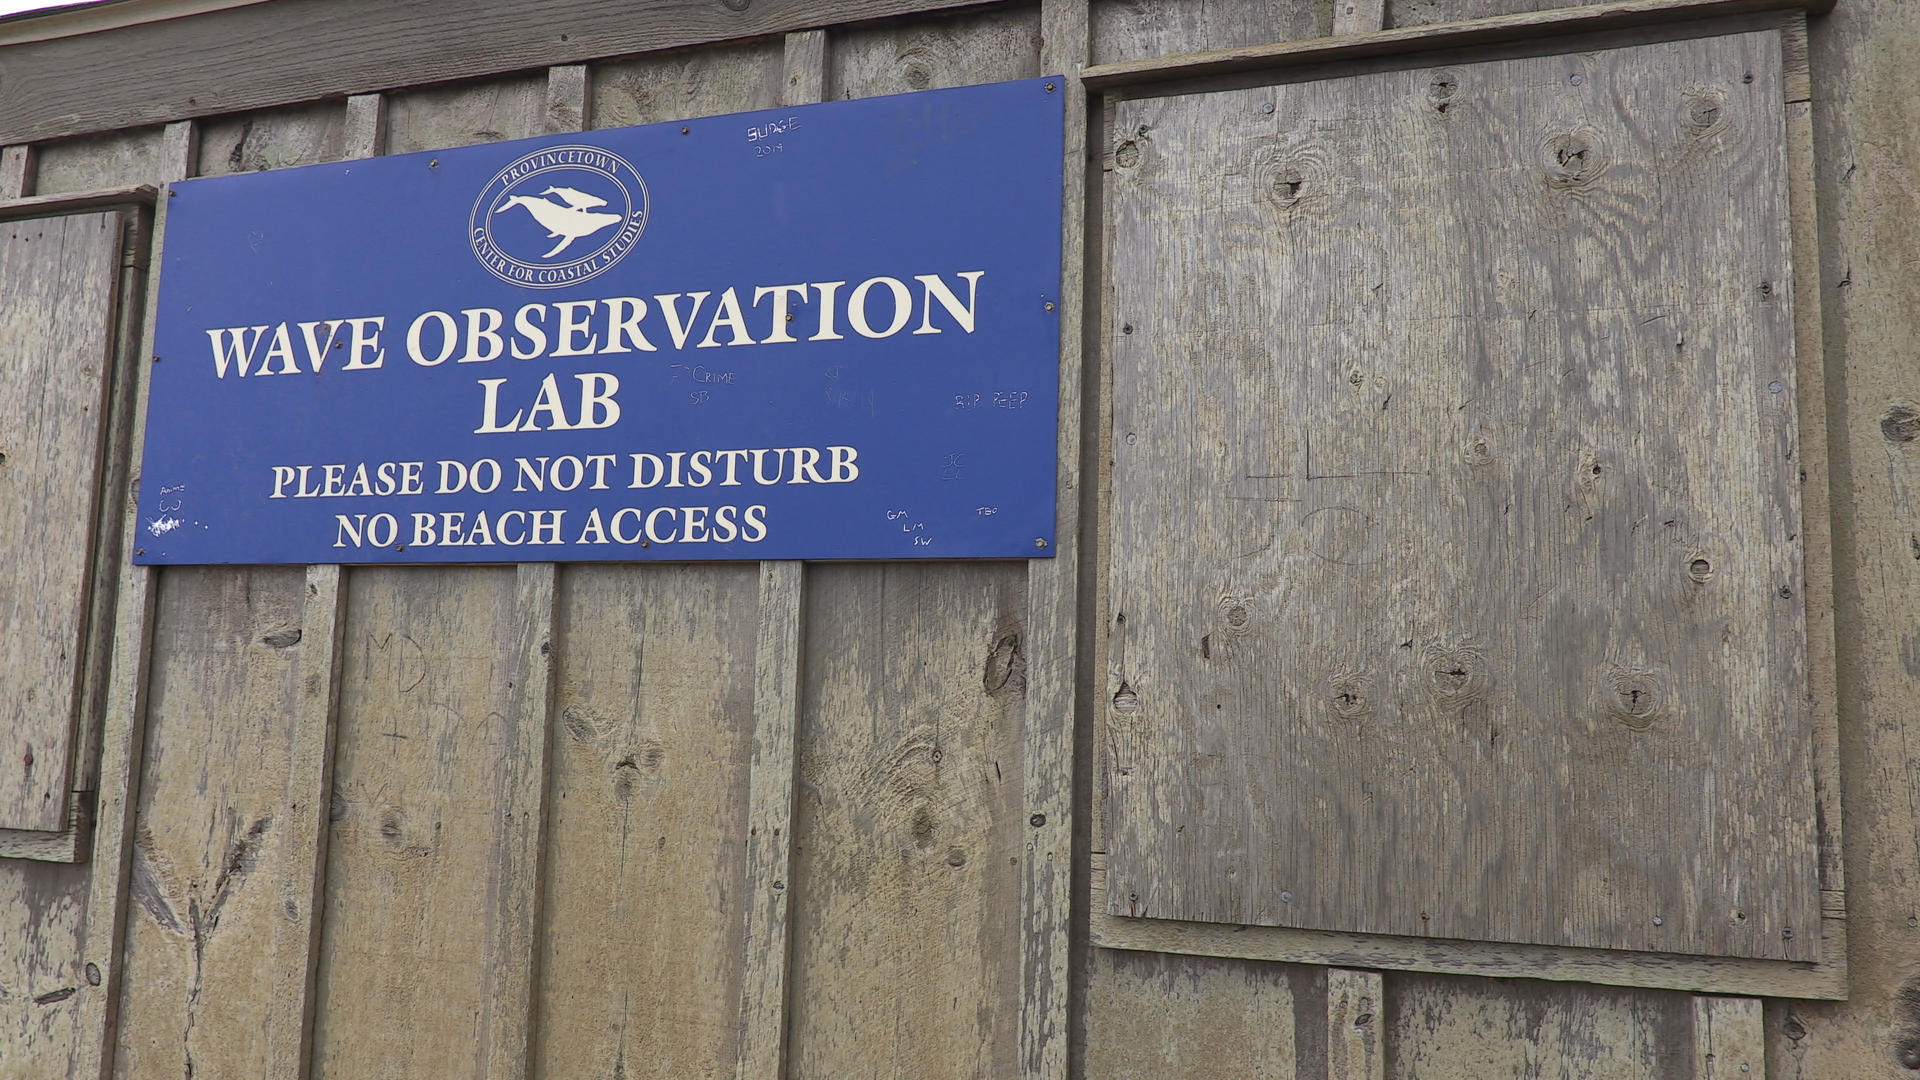 A sign on a wooden shed that states WAVE OBSERVATION LAB.